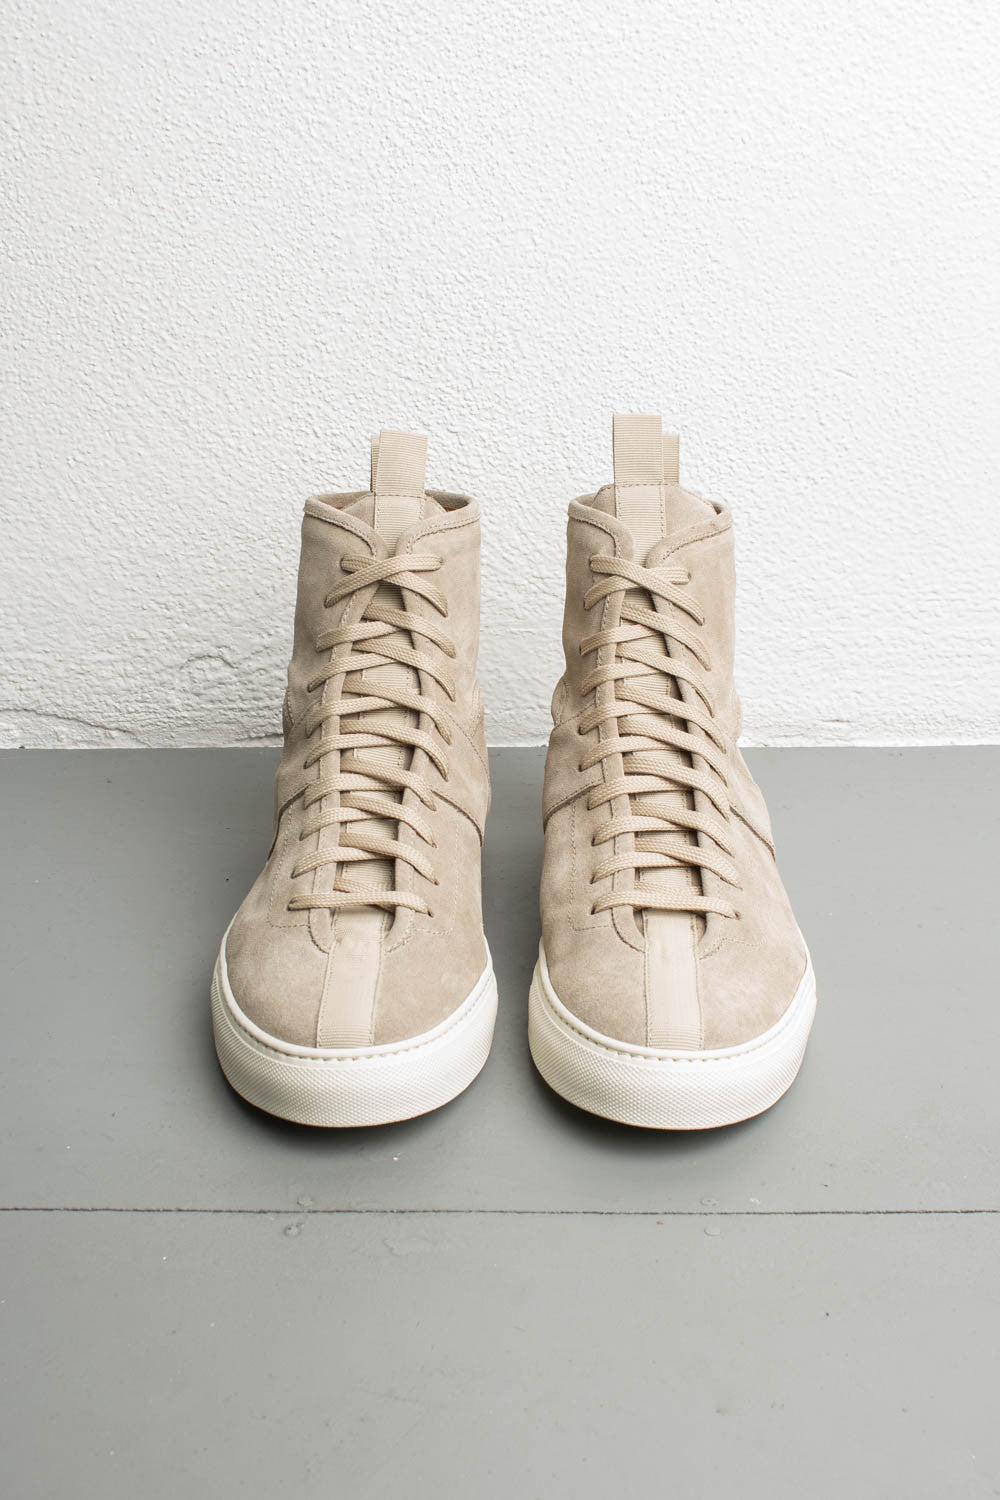 4e62f43dd21a2 designer high tops by daniel patrick ...